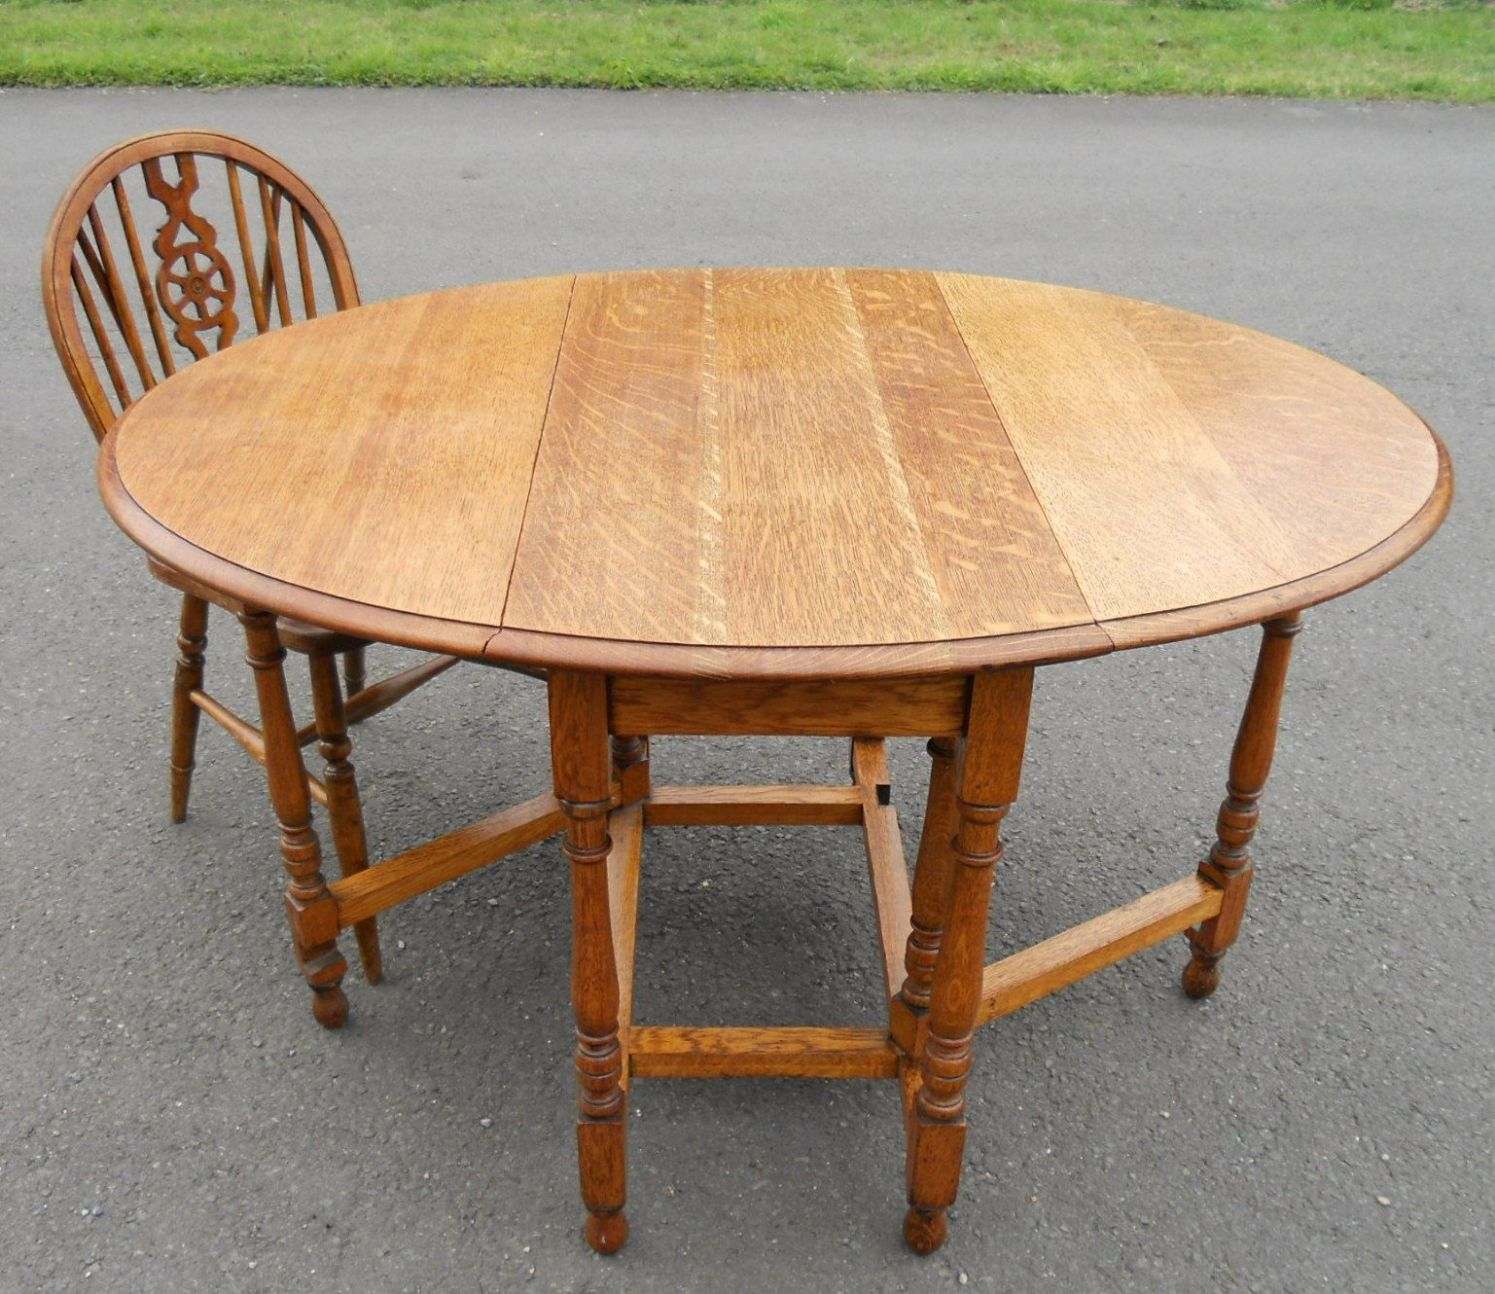 Oval Oak Coffee Table Uk: Light Oak Oval Gateleg Table